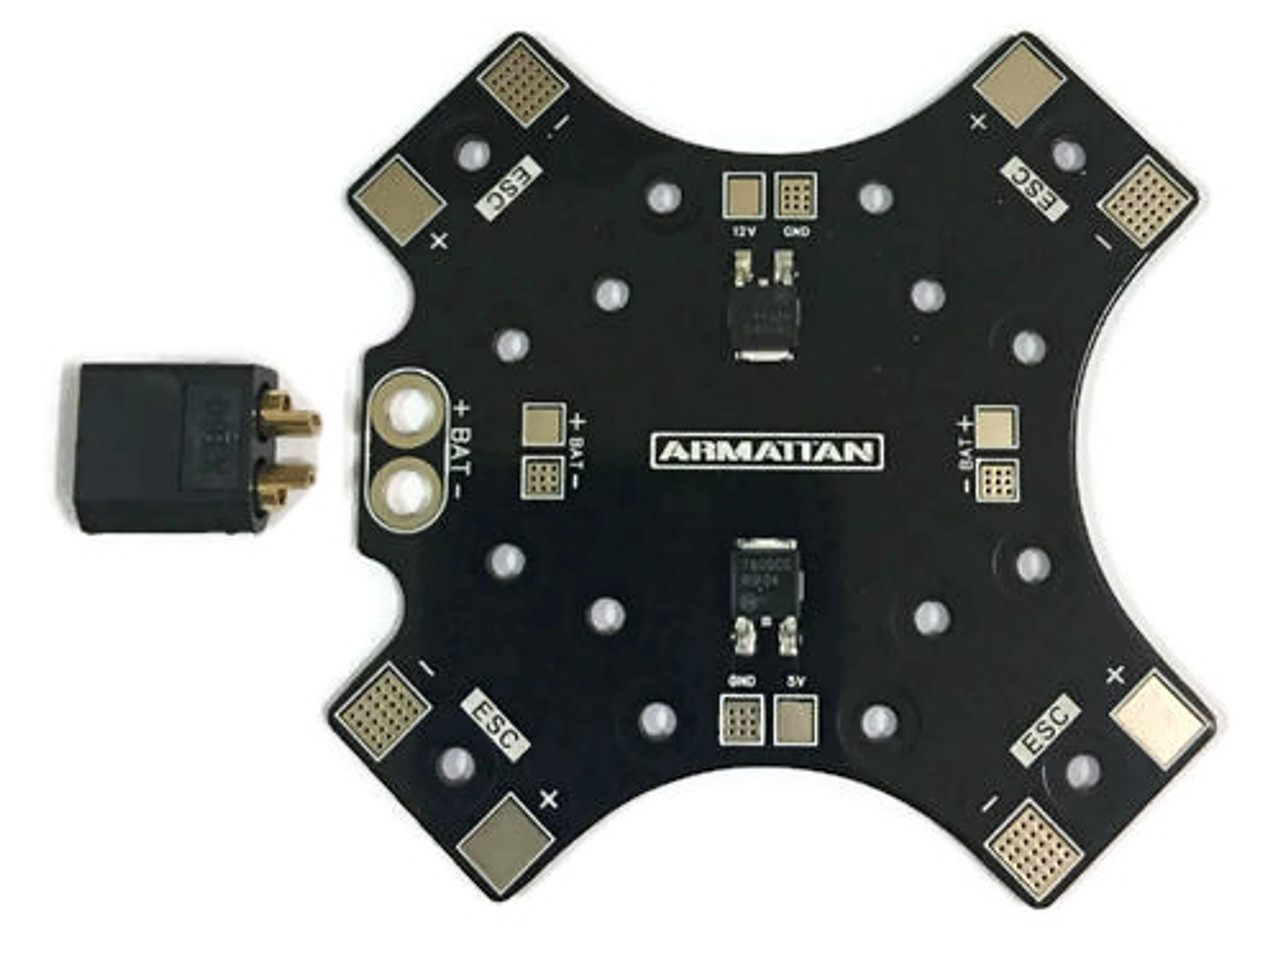 F1 Integrated Power Distribution Board 5v/12v with XT-60